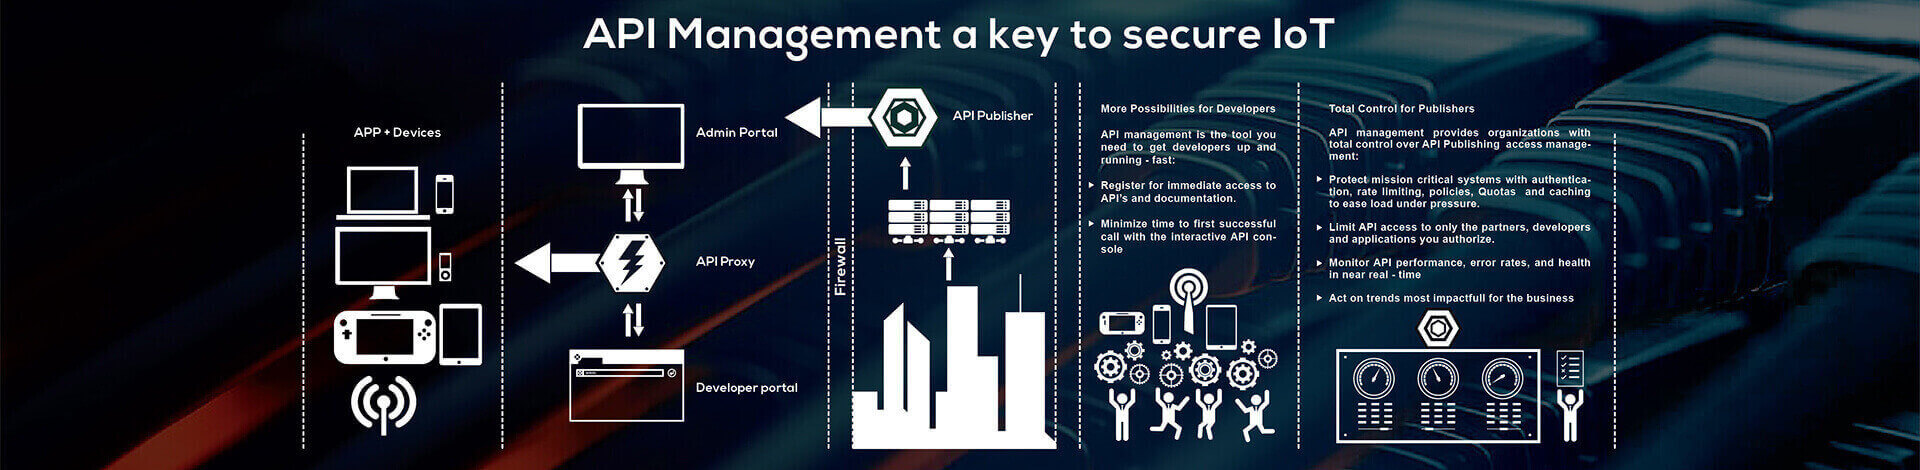 API Management a key to secure IoT solutions